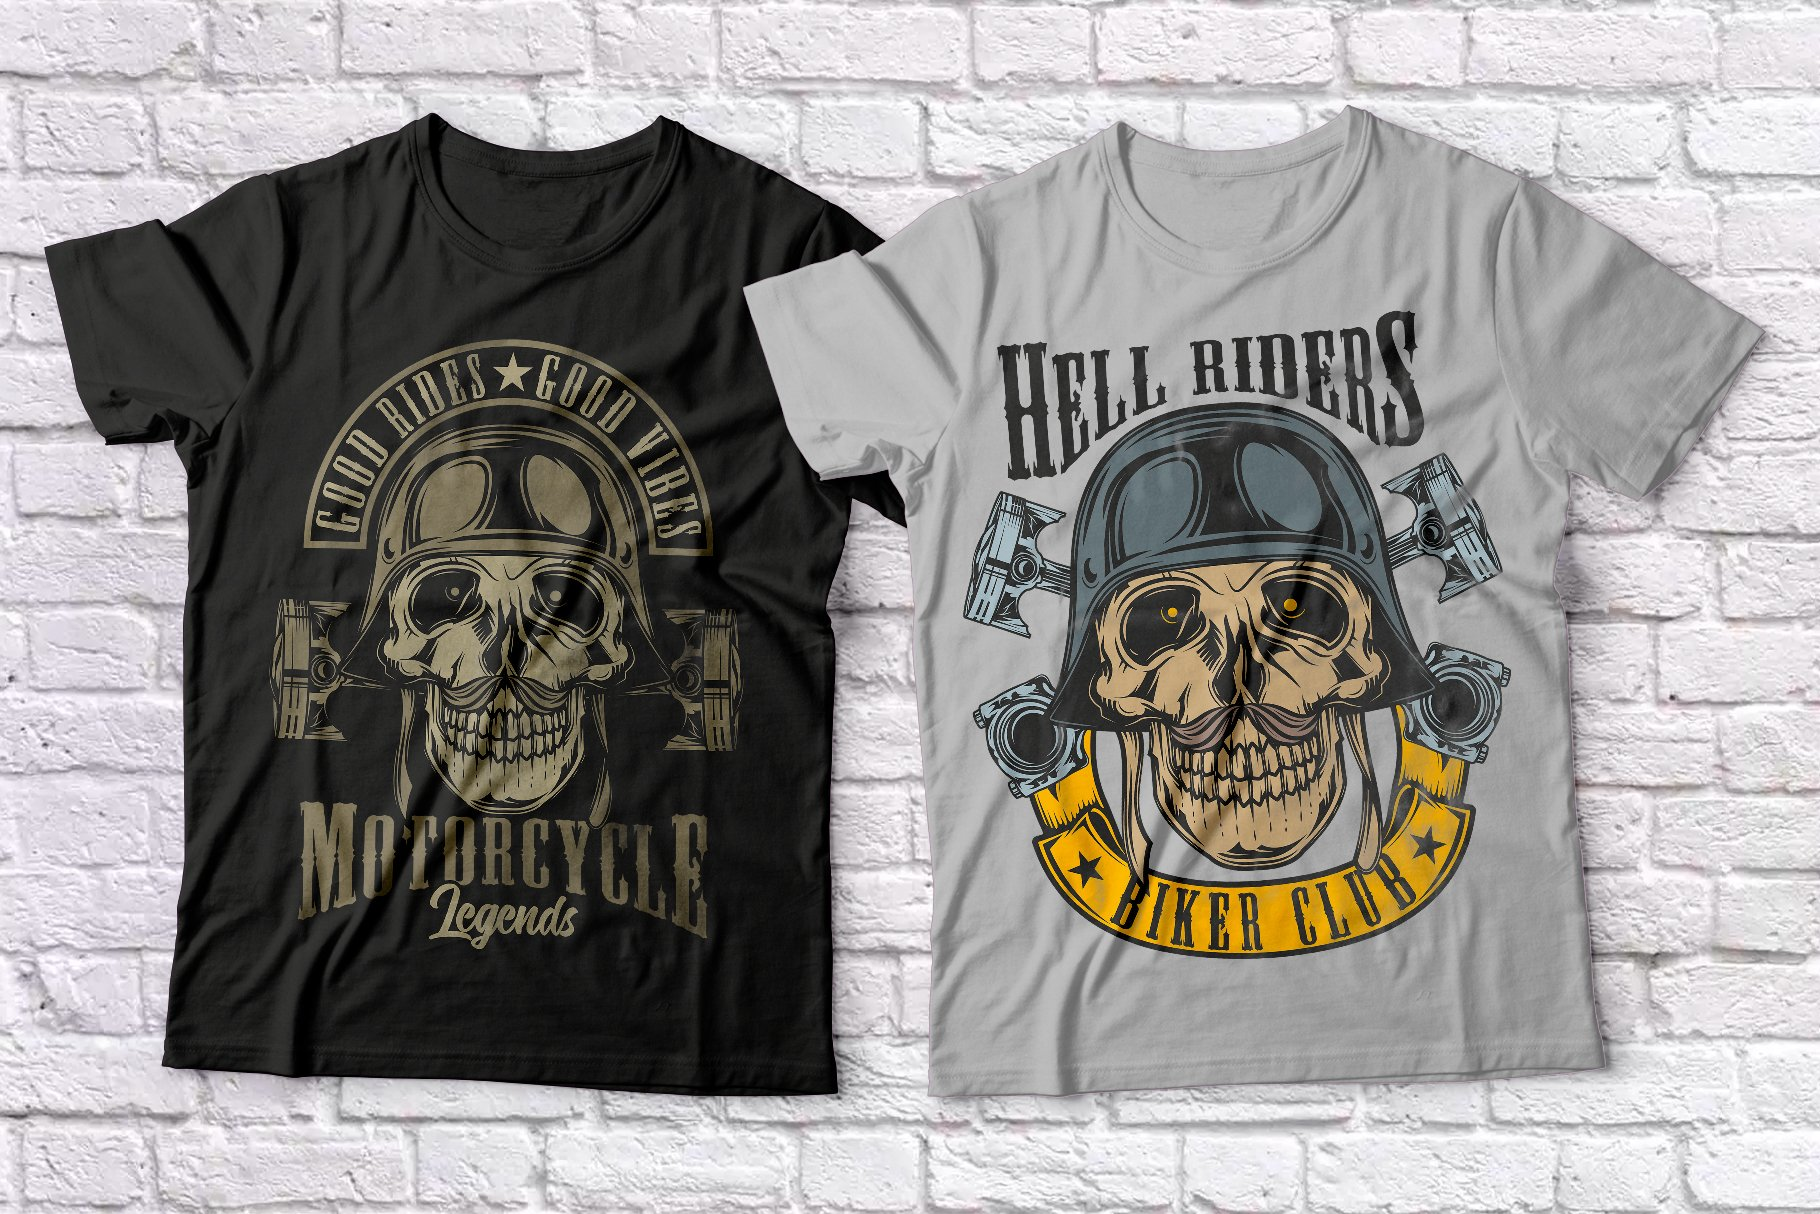 Warriors and bikers T-shirts set example image 3